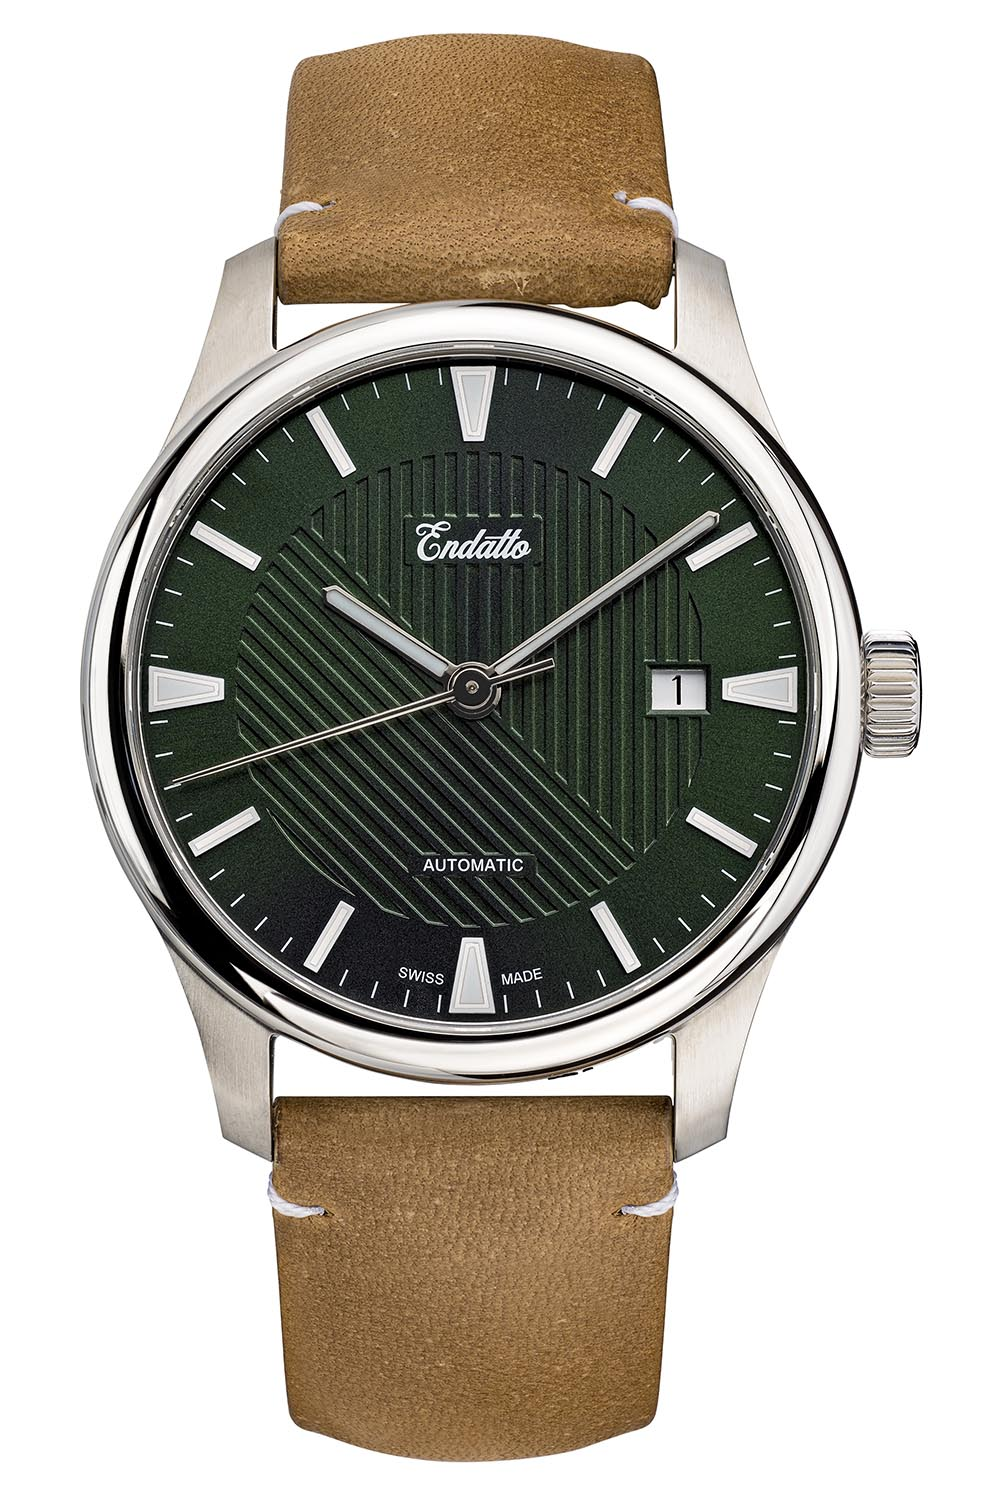 Endatto Watches Endatto-C1V1-and-C1V2-New-American-Watch-Brand-3